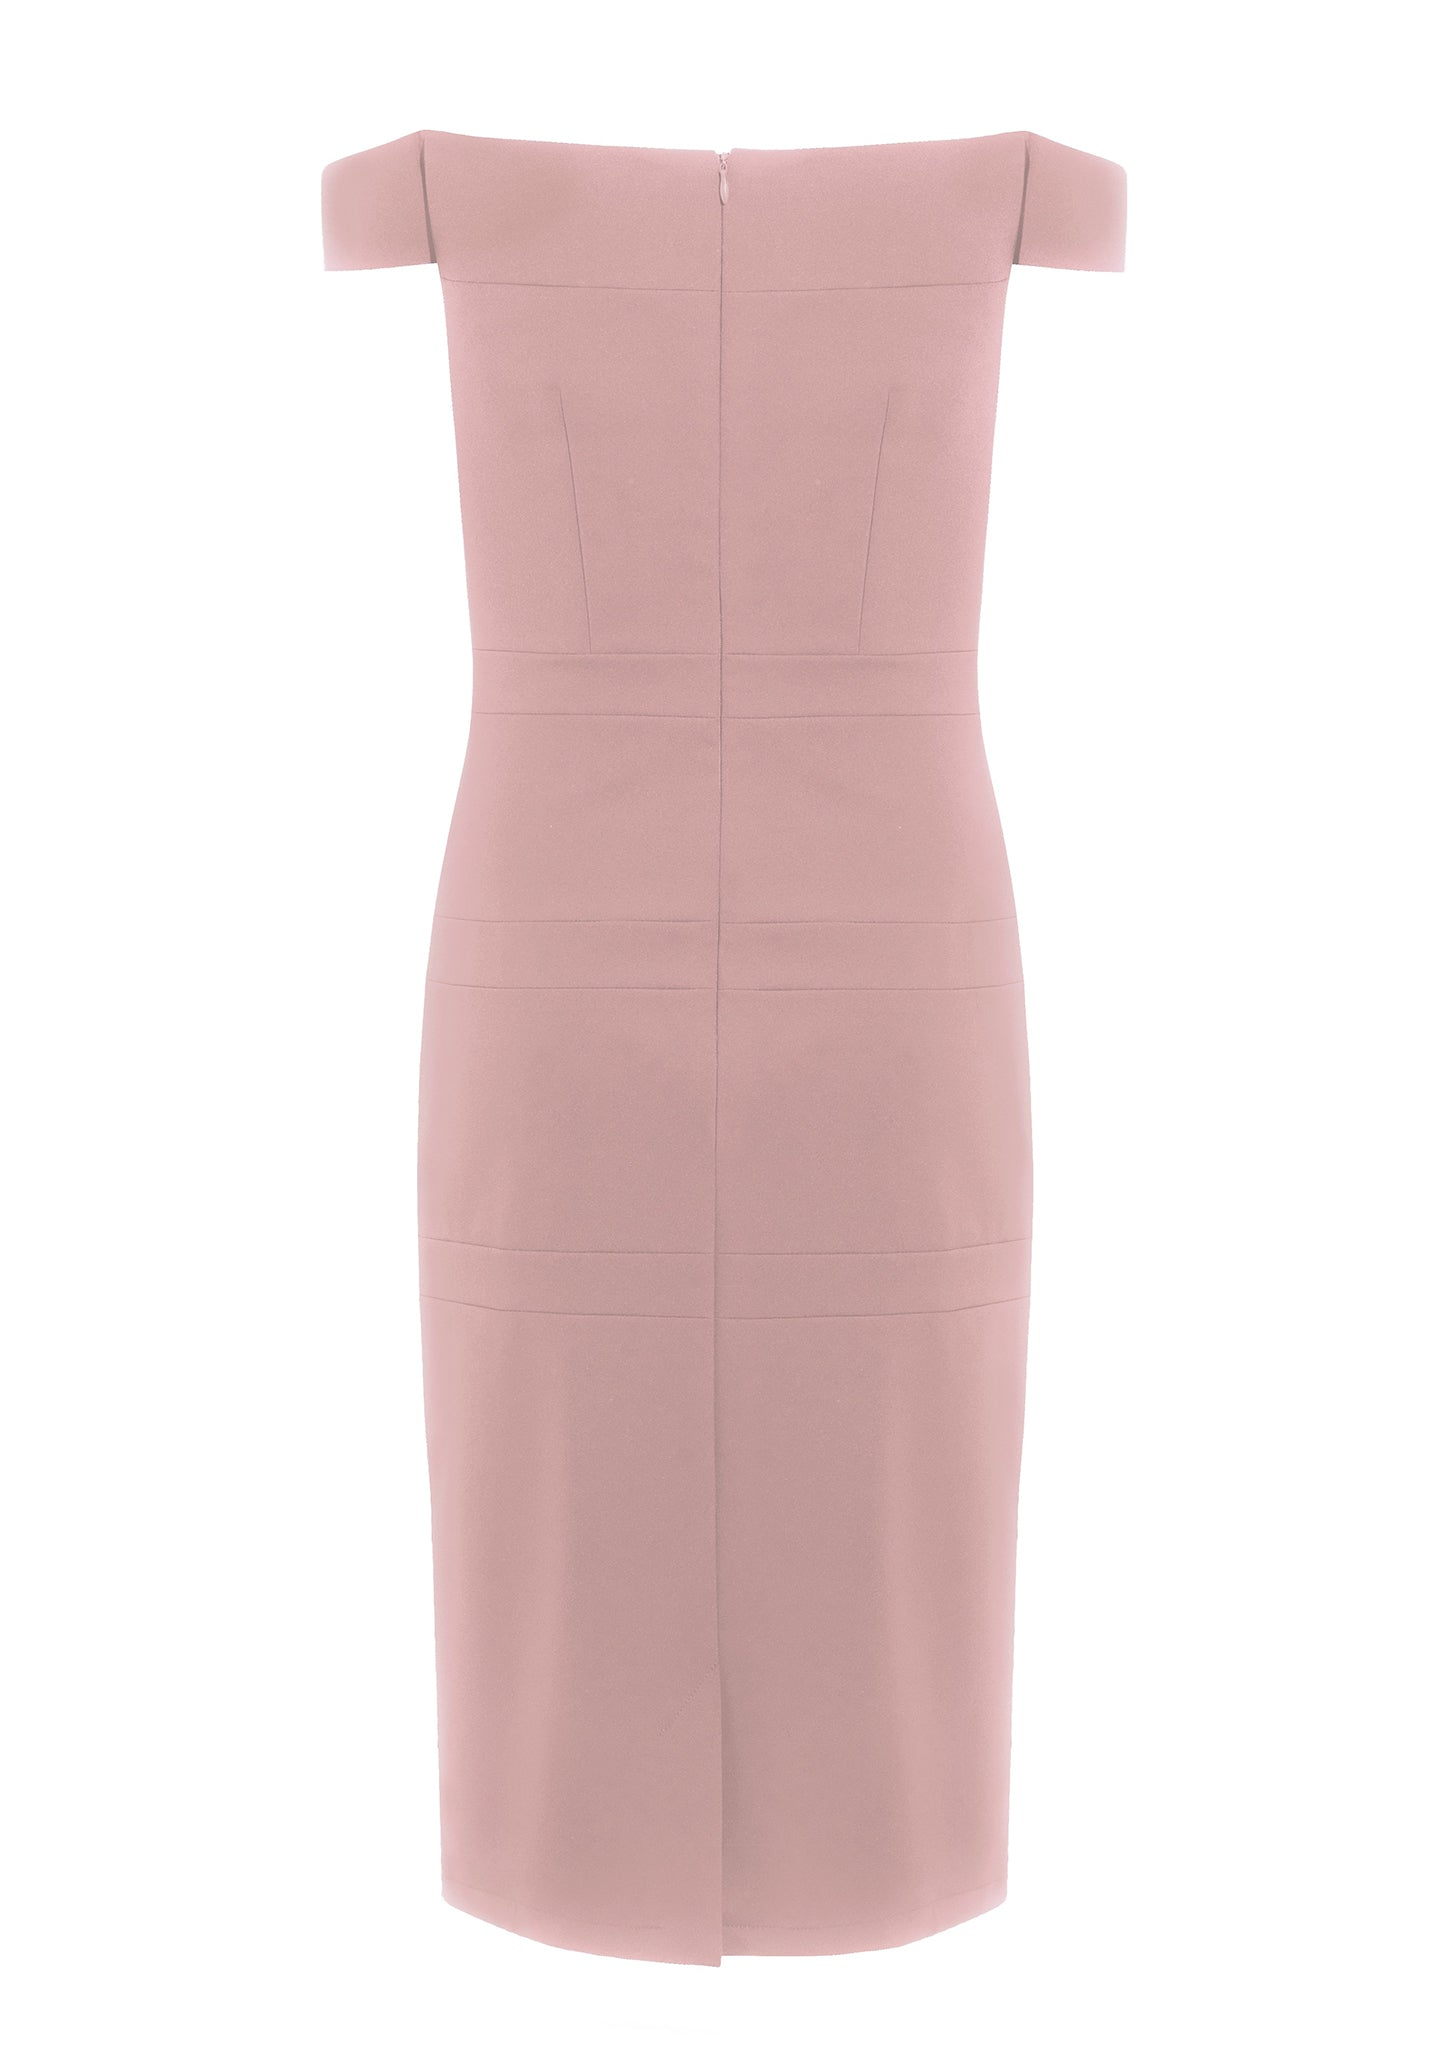 Emilie Blush Pink Stretch Cady Dress - HEMYCA London